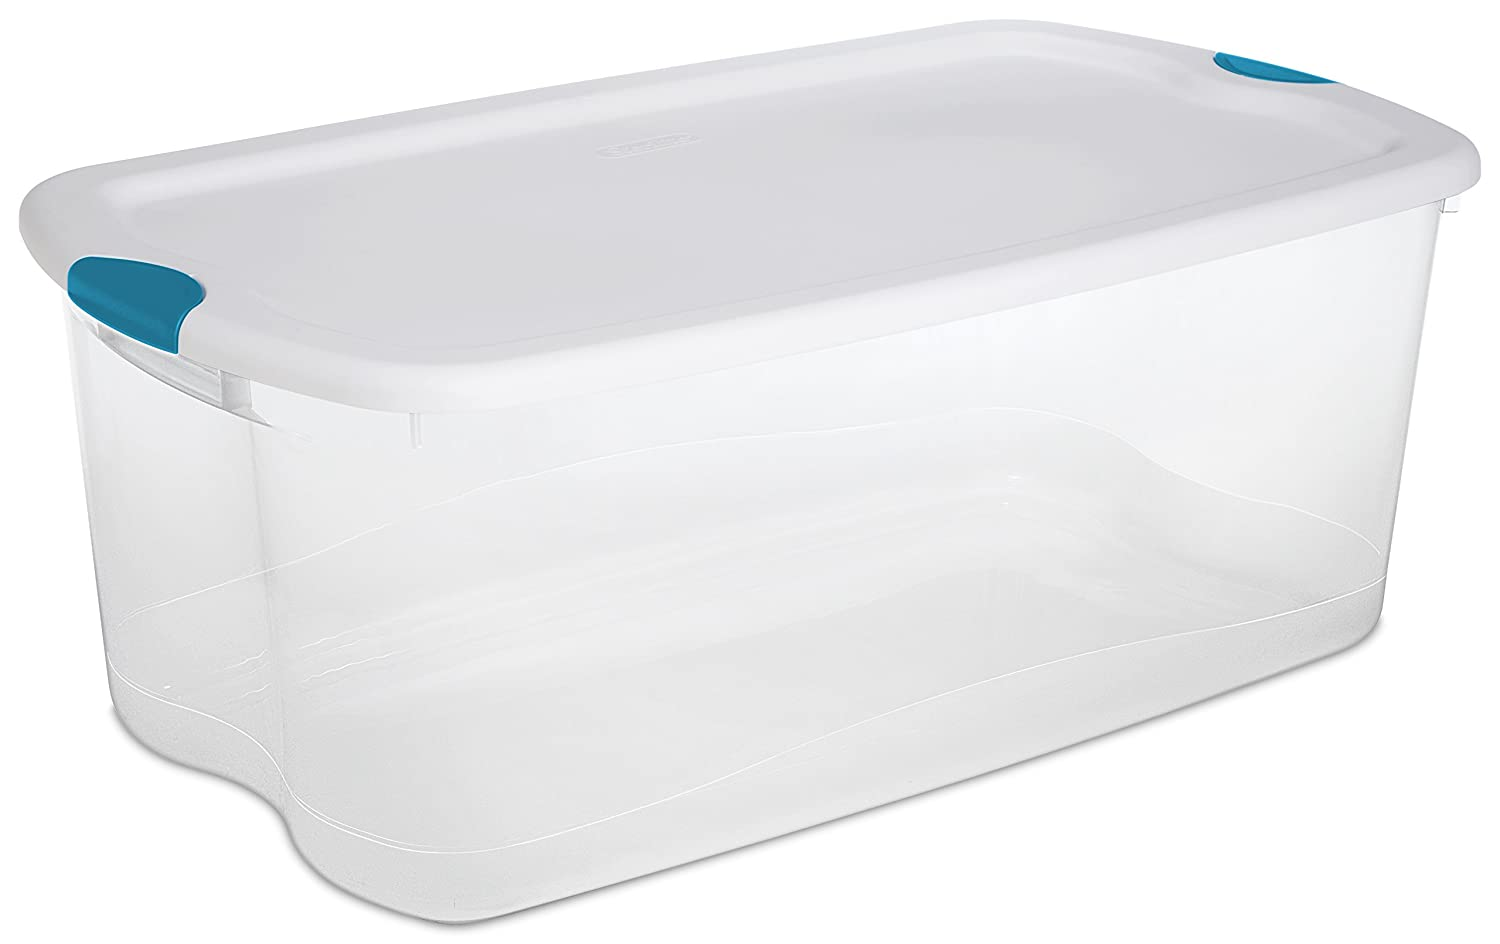 Amazon.com STERILITE 18898004 106 Quart/100 Liter Latch Box White Lid Clear Base Blue Aquarium Latches 4-Pack Home u0026 Kitchen  sc 1 st  Amazon.com : big storage bins  - Aquiesqueretaro.Com